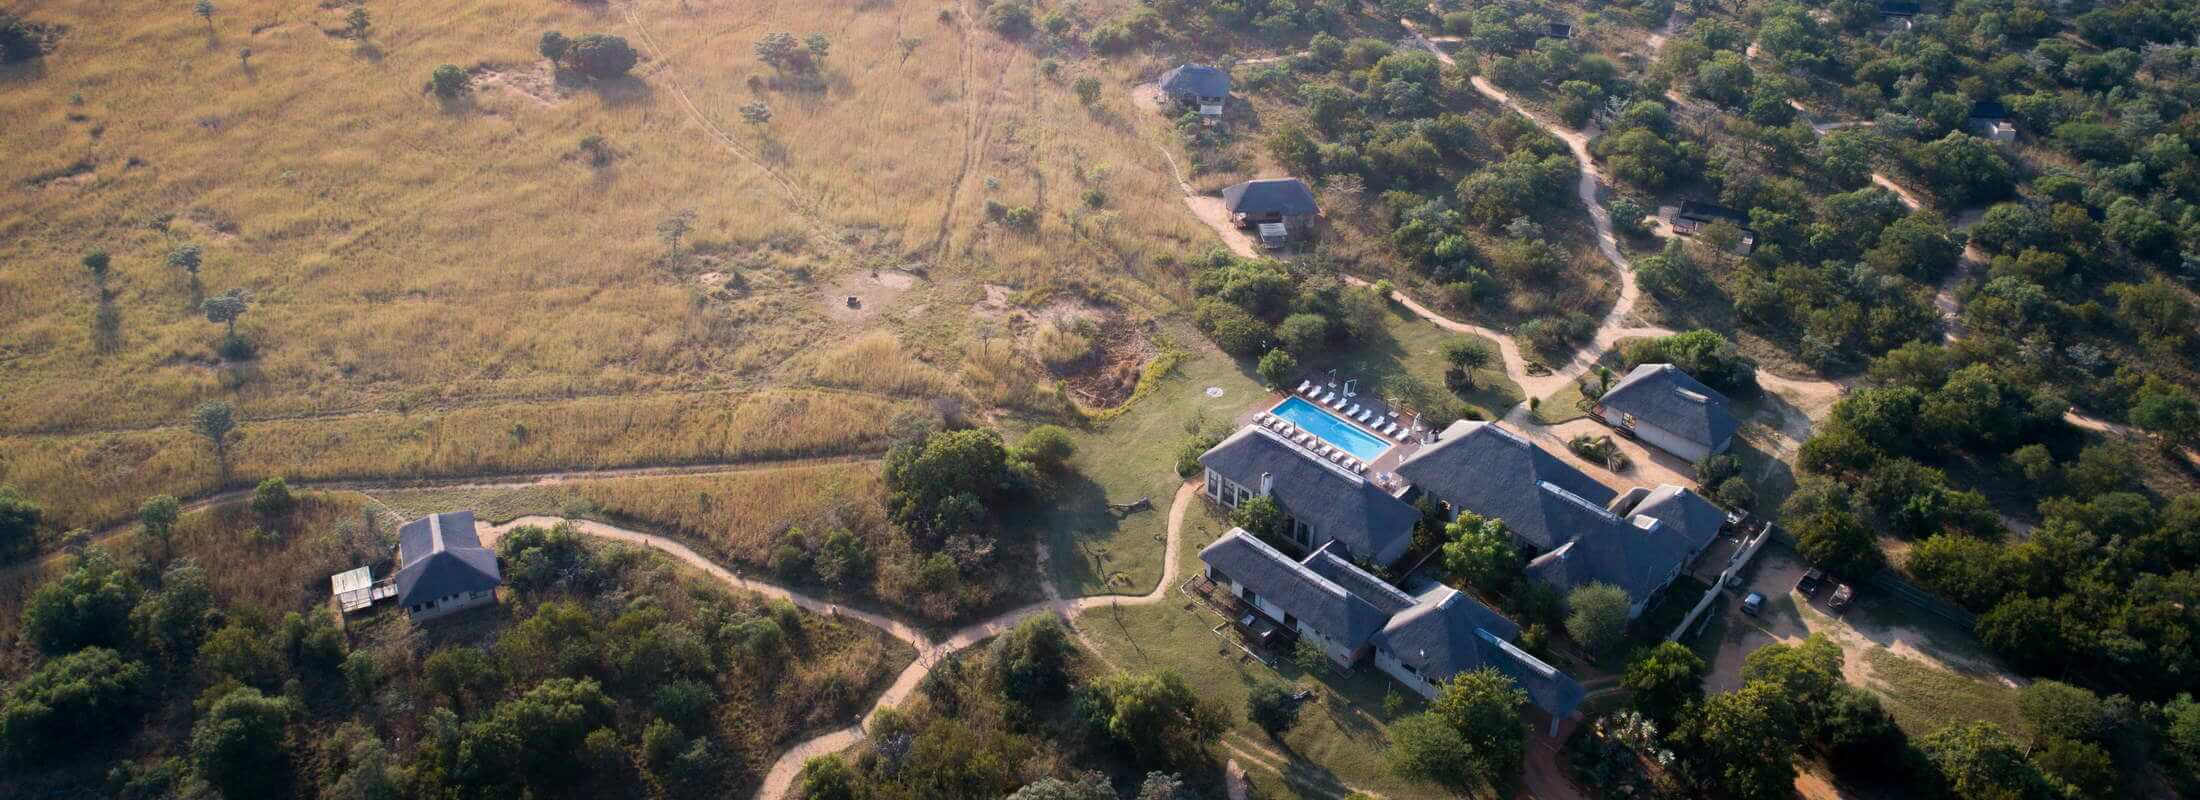 Thandeka Lodge Bela Bela Accommodation Resort Game Lodge Spa Kosher